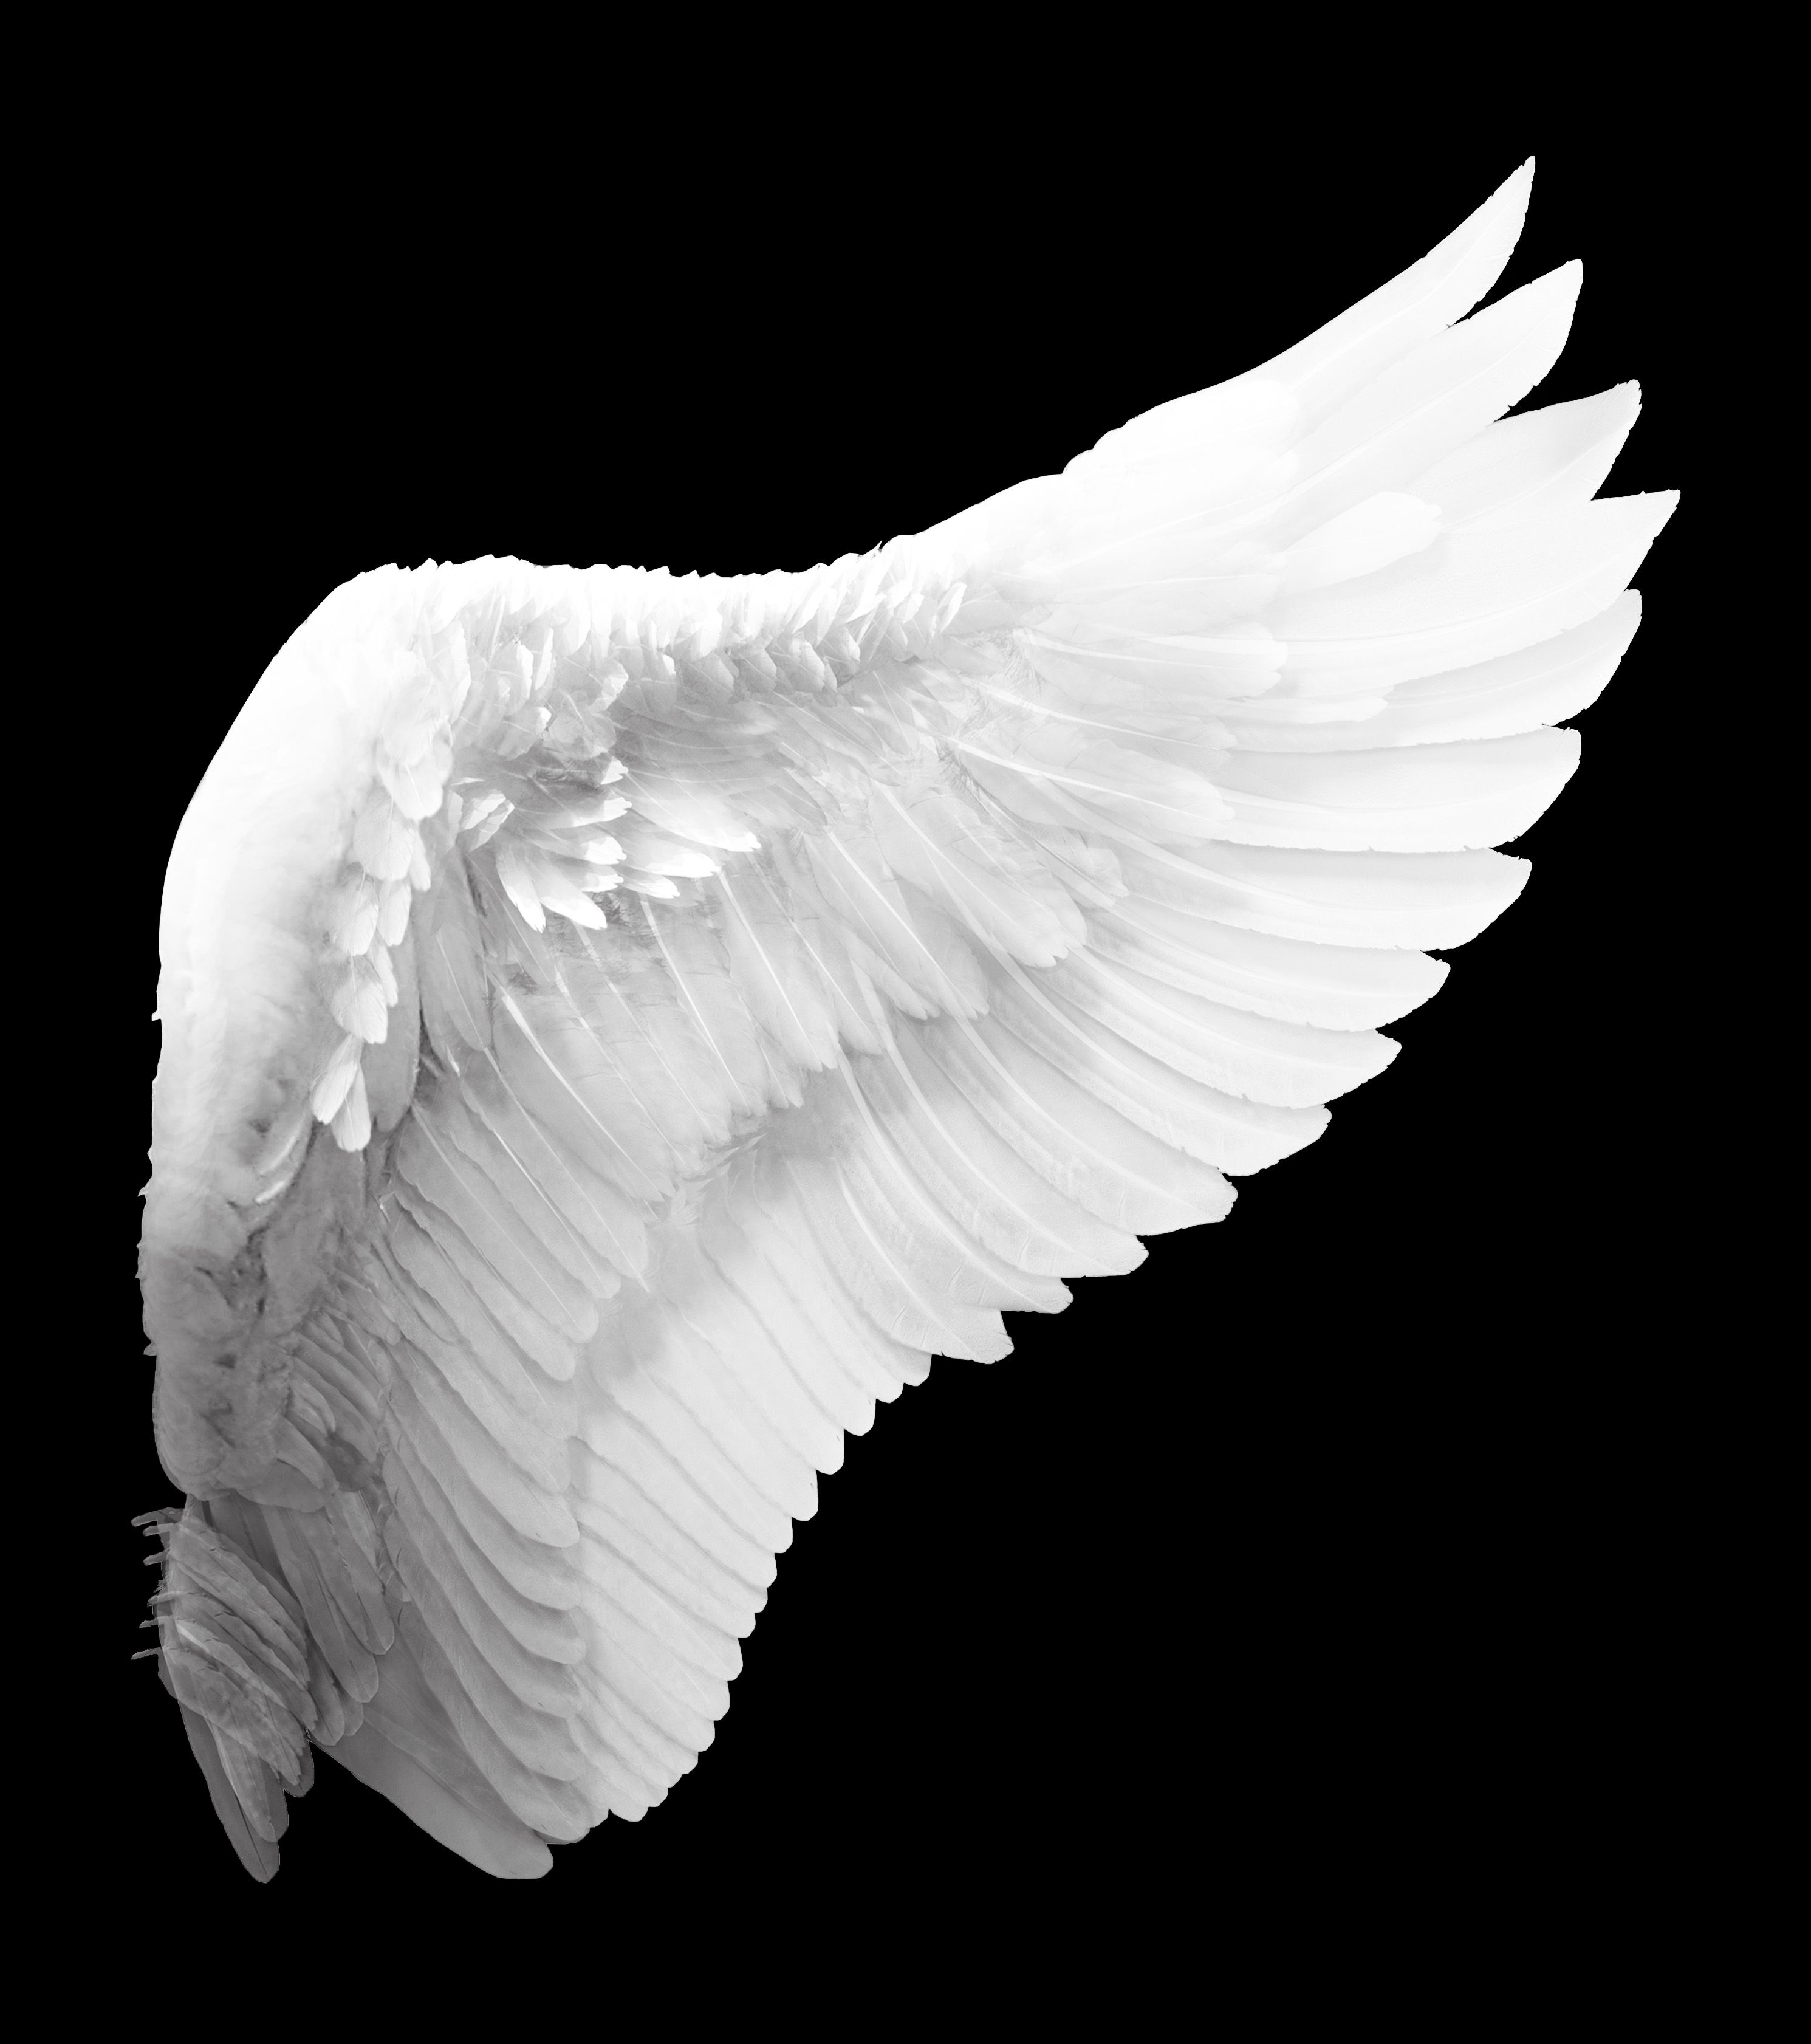 angel wings black background - photo #6